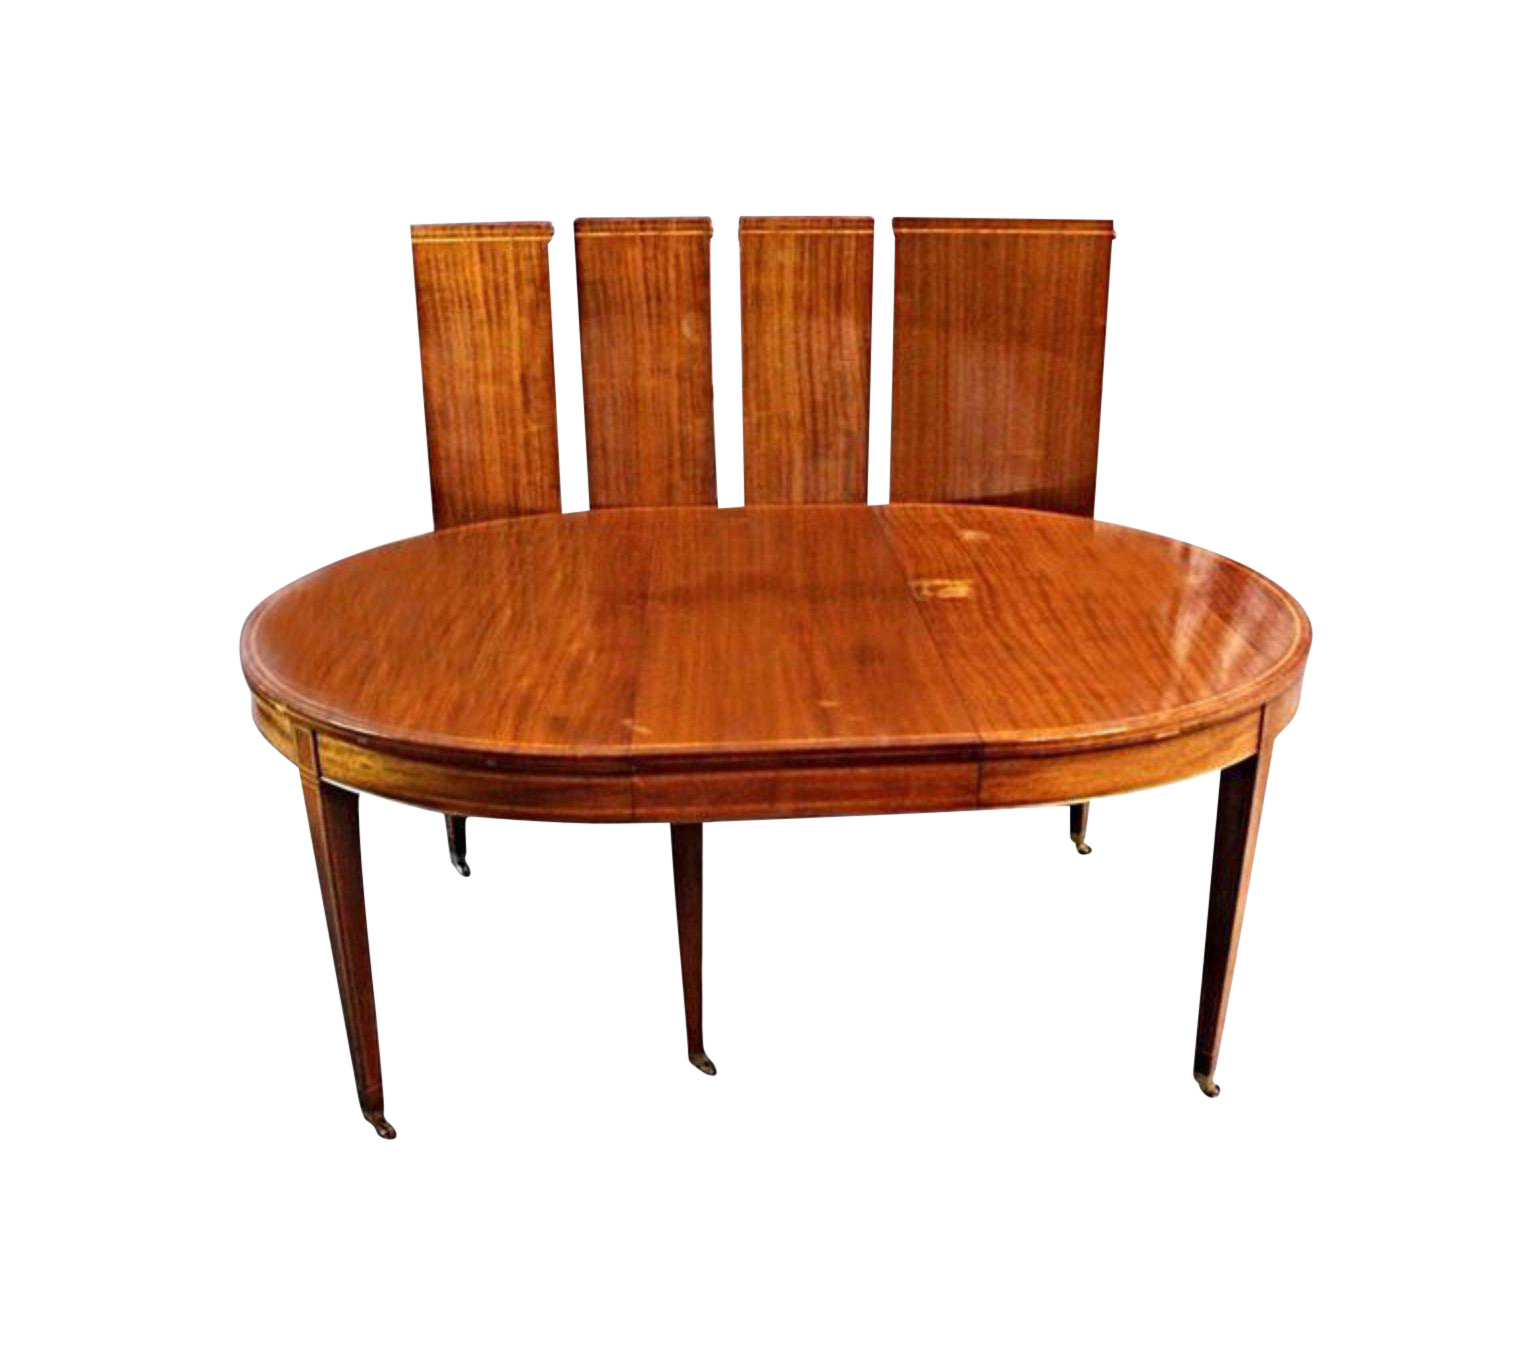 Sheraton Style Inlaid Dining Table With Five Leaves Chairish